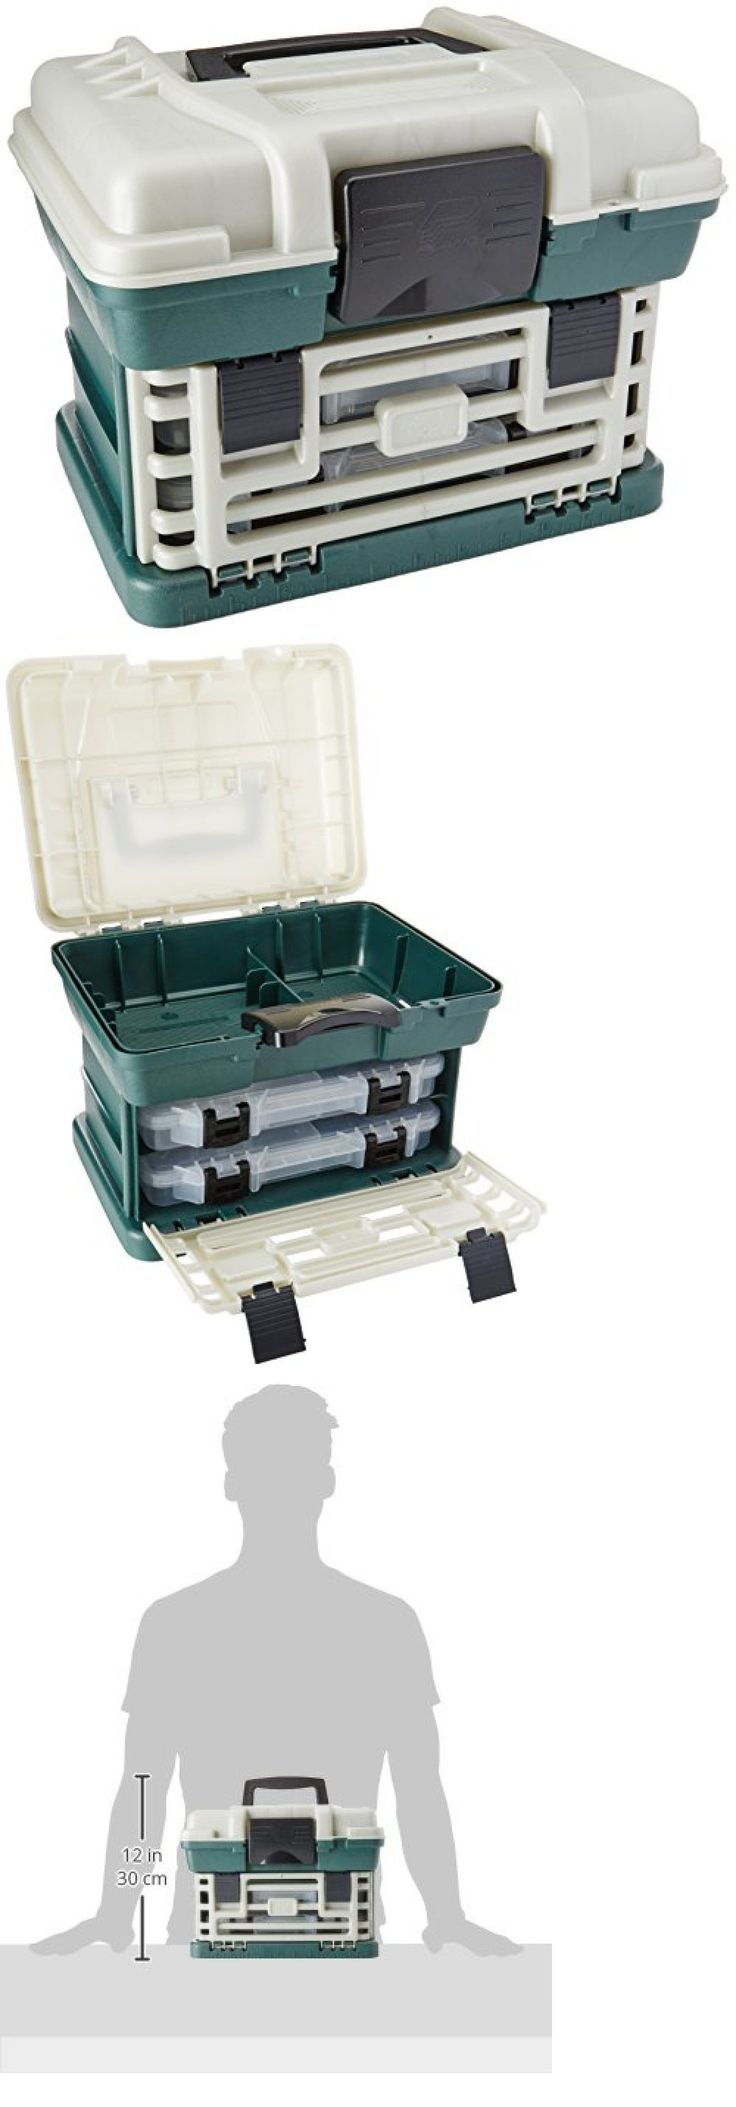 Tackle Boxes and Bags 22696: Fishing Tackle Box Lures Storage Tray Bait Case Drawer Lures Hooks Organizer -> BUY IT NOW ONLY: $31.27 on eBay!